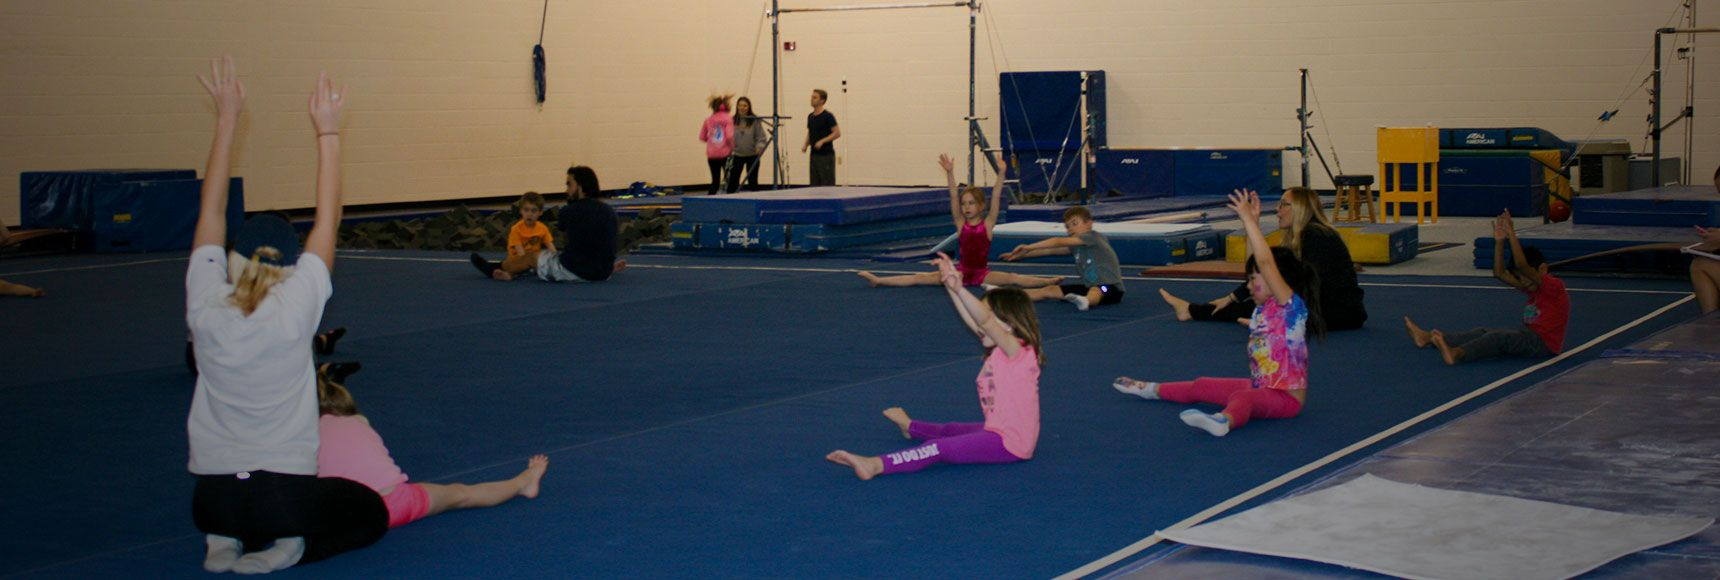 Students stretching for gymnastics class